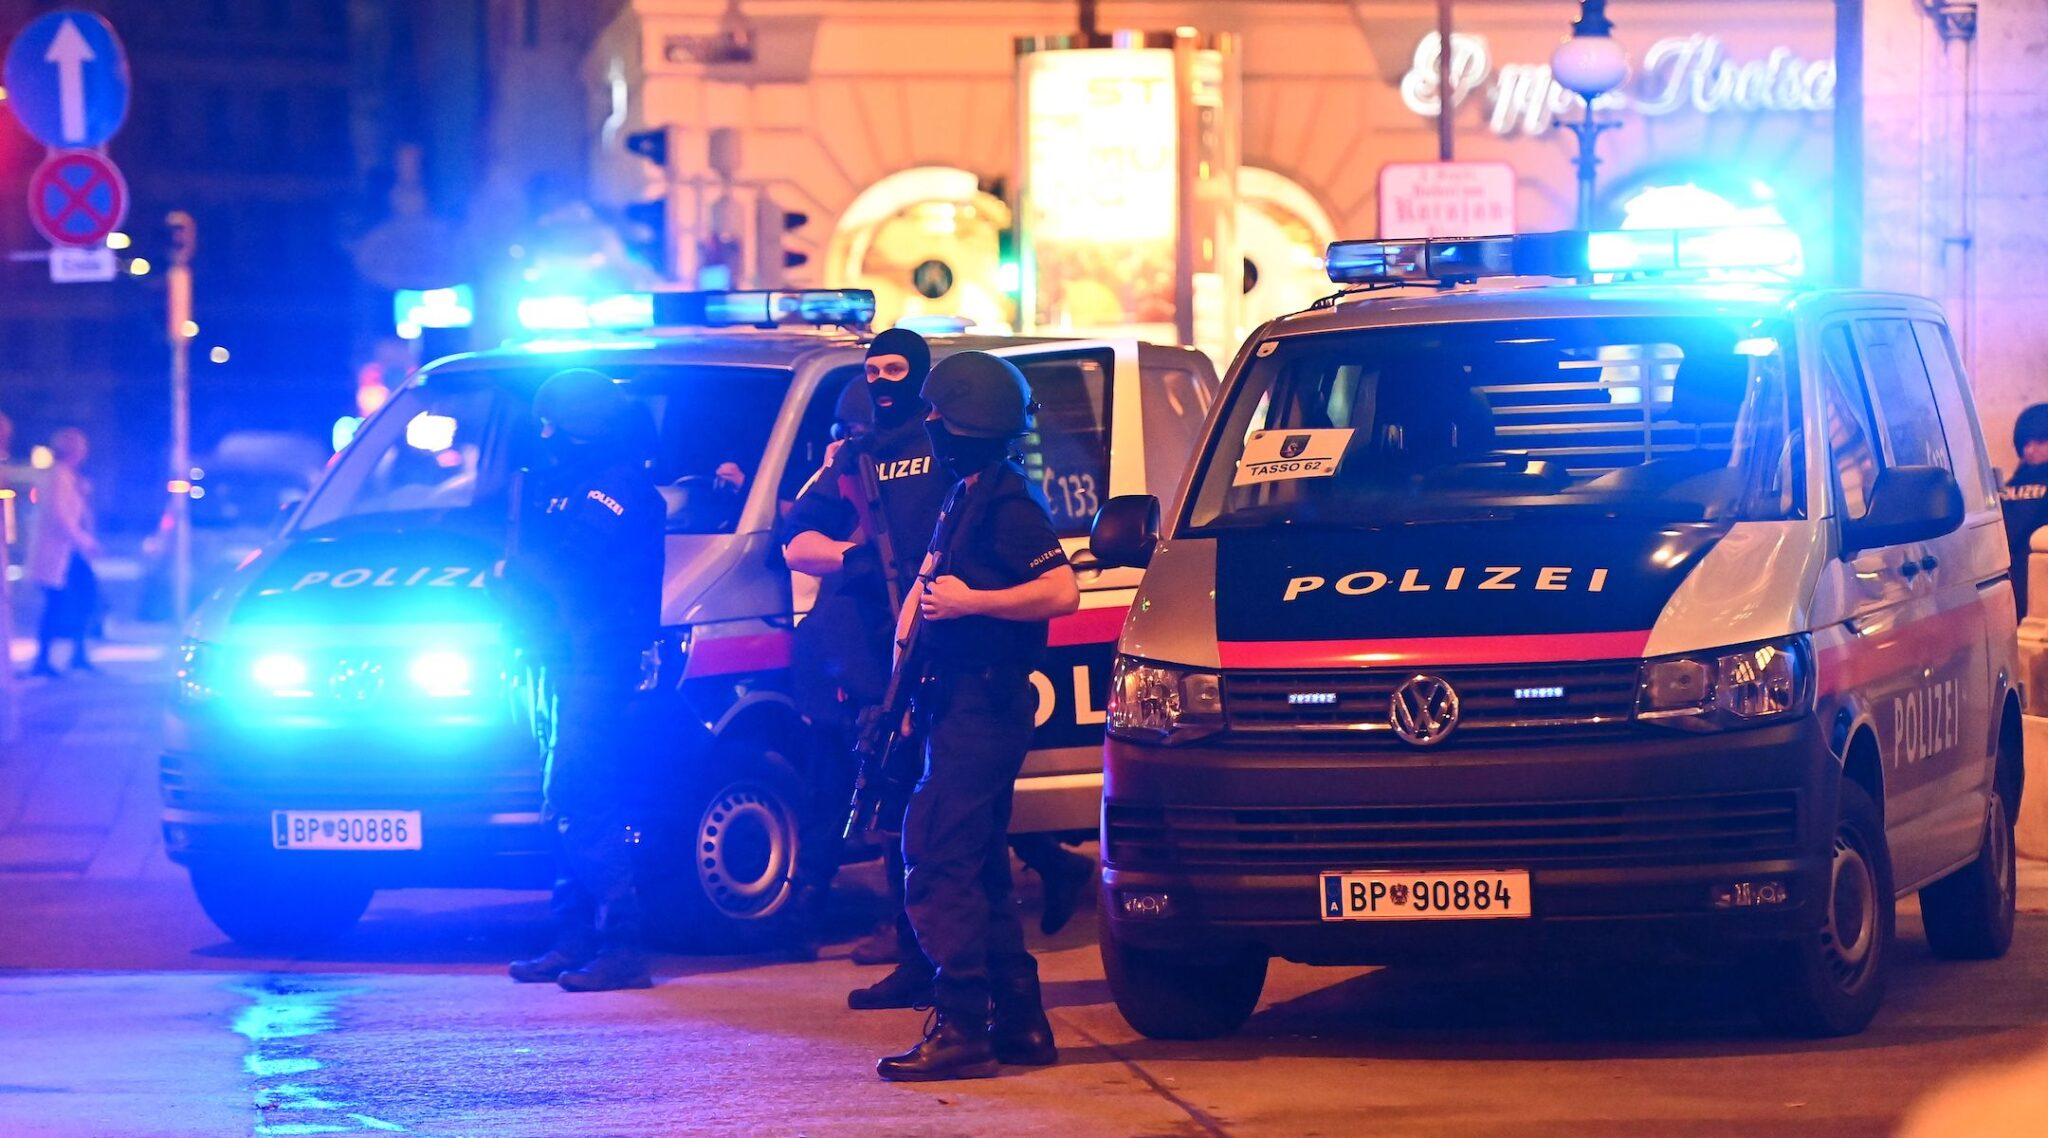 Policemen in central Vienna, where dozens of shots were fired on Nov. 2, 2020. (Photo/JTA-Joe Klamar-AFP via Getty Images)